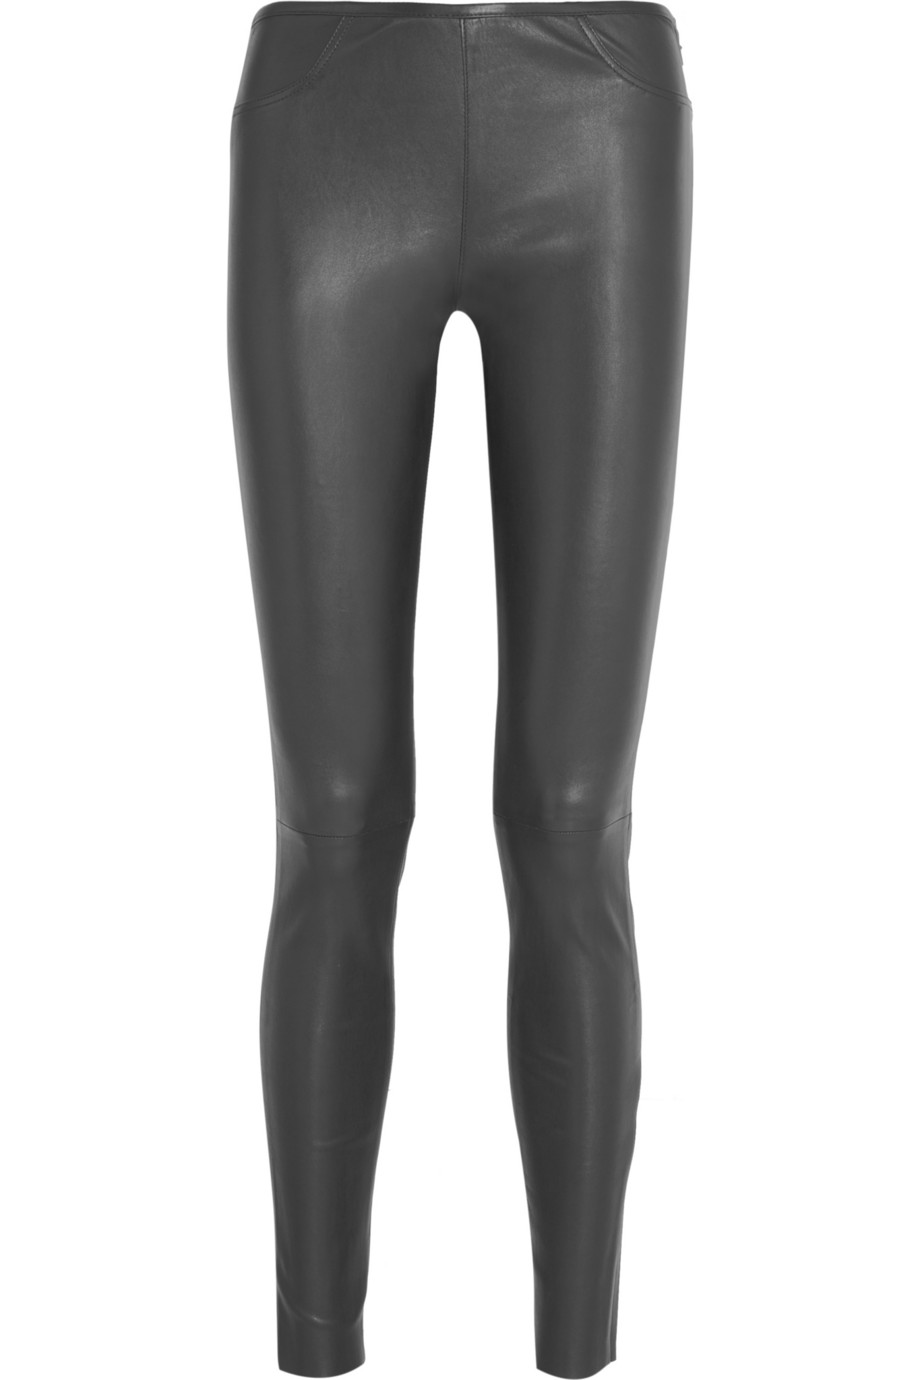 Iris & Ink Stretch-leather leggings – 0% at THE OUTNET.COM